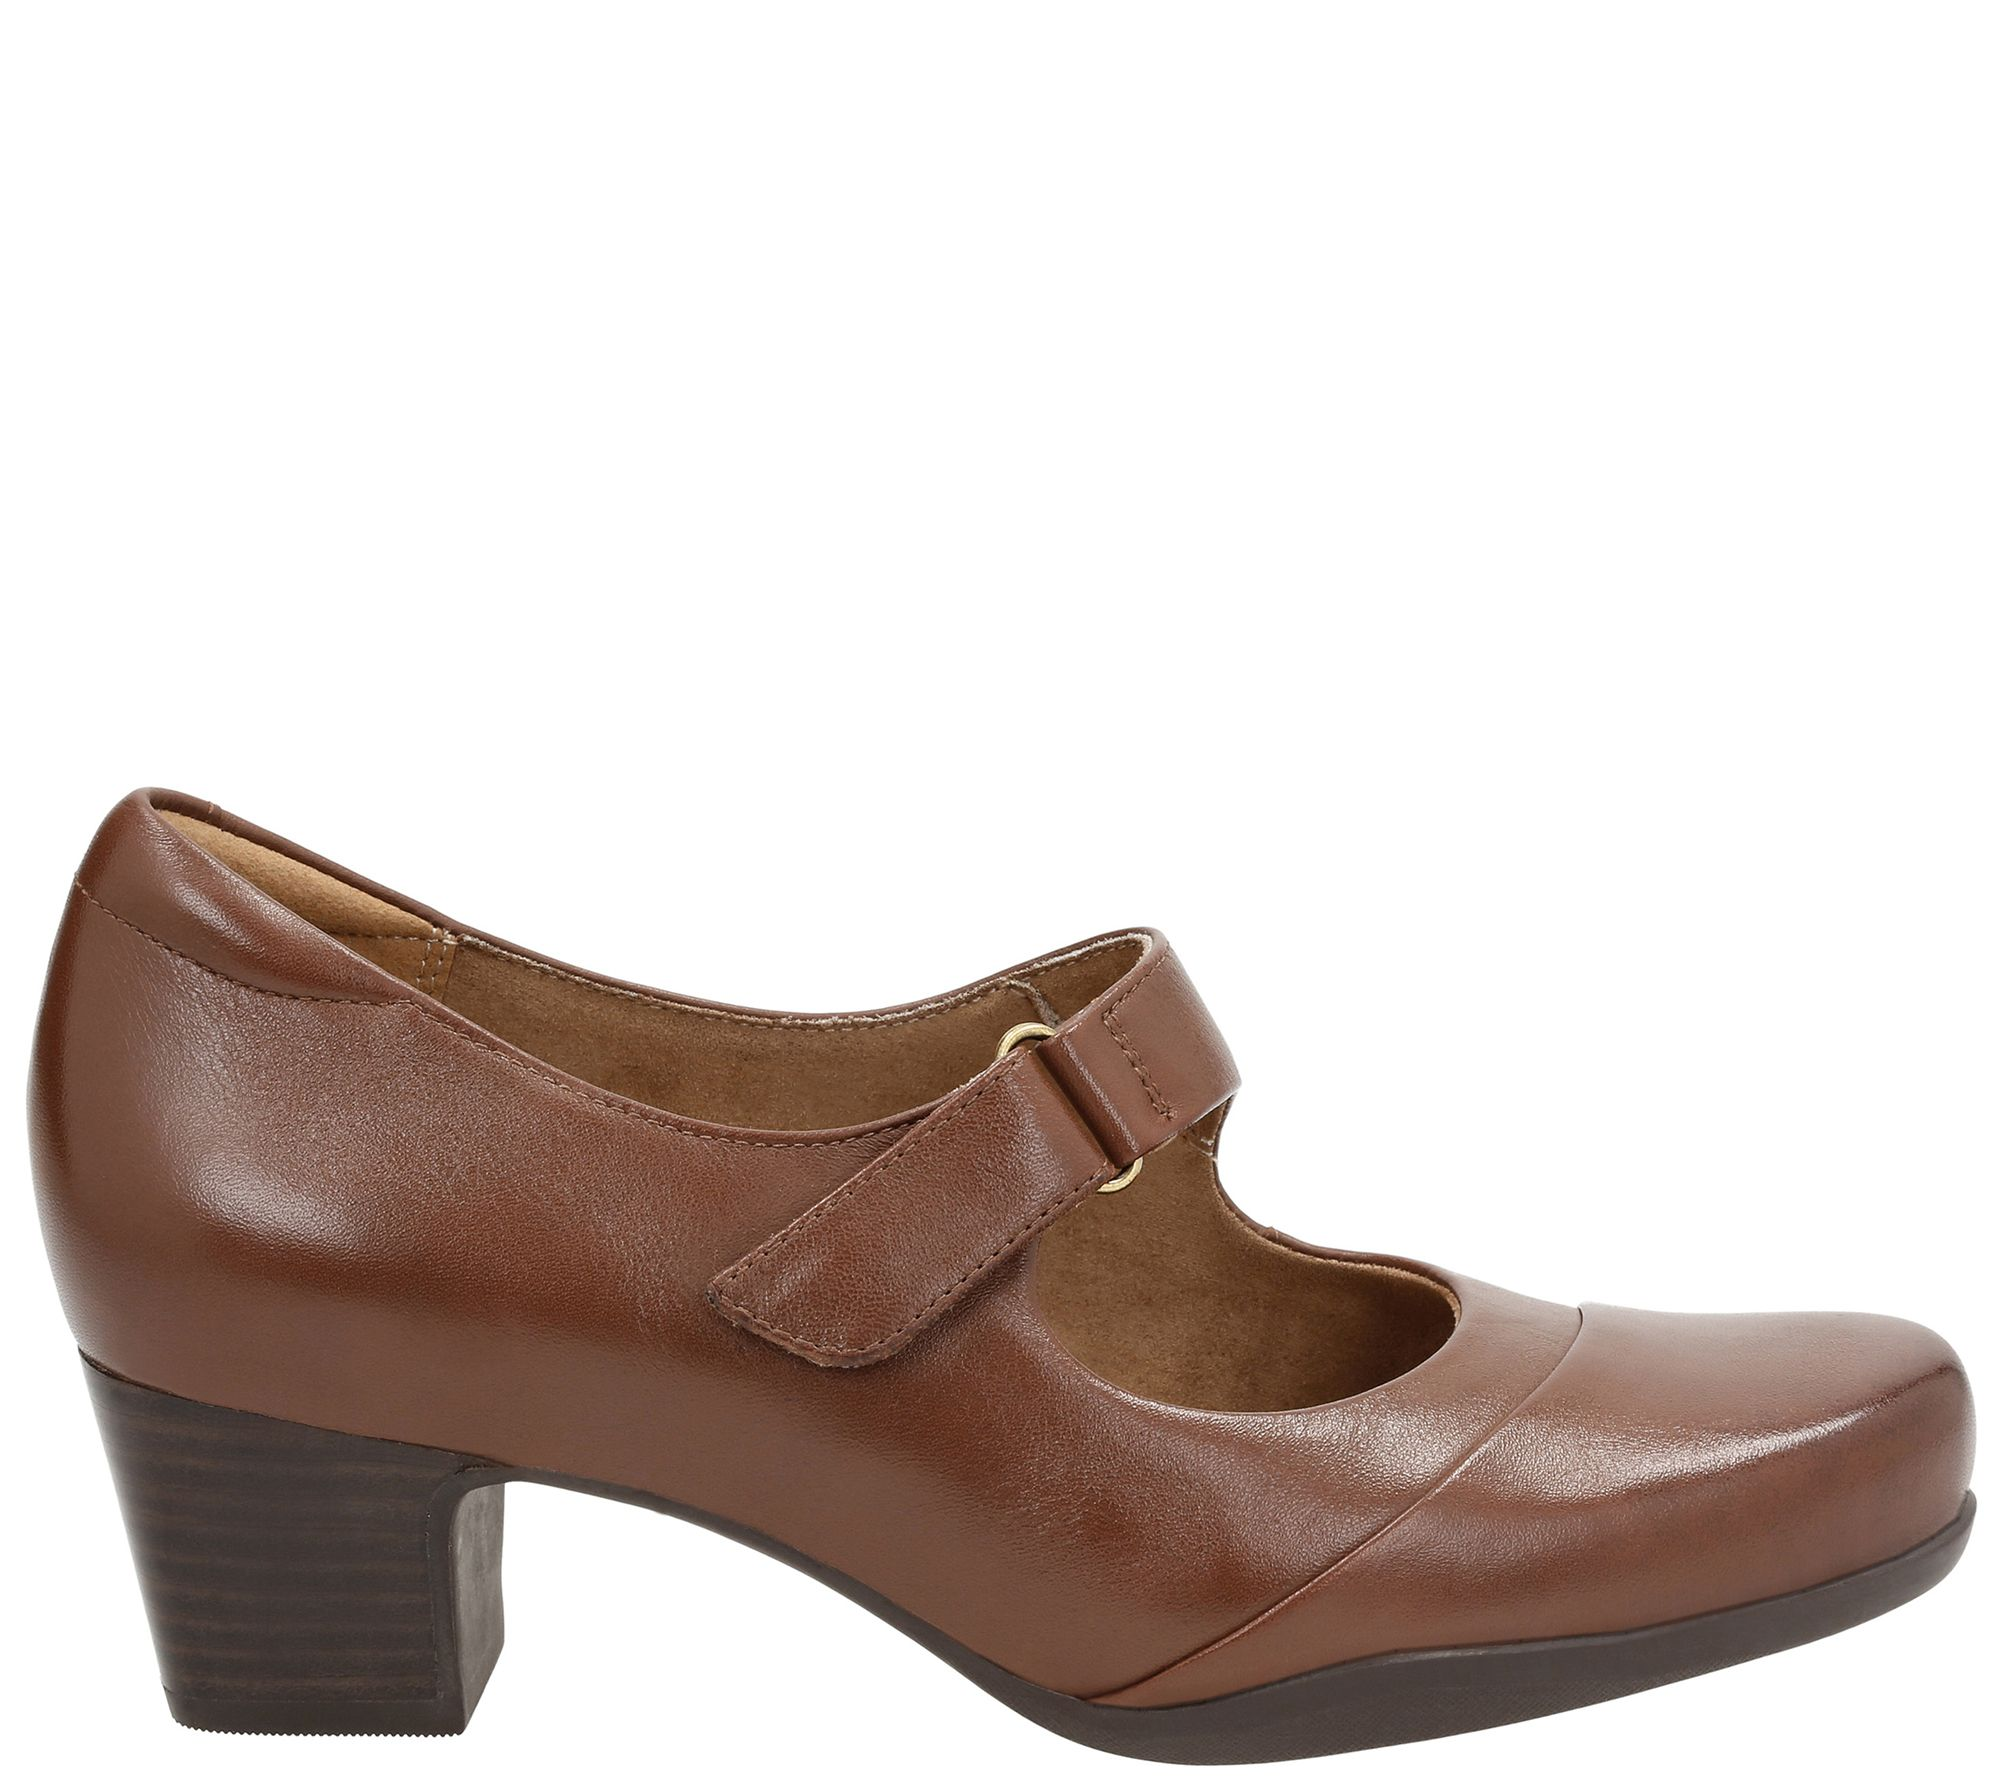 eb3a2053fb52 Clarks Artisan Leather Mary Jane Pumps - Rosalyn Wren - Page 1 — QVC.com